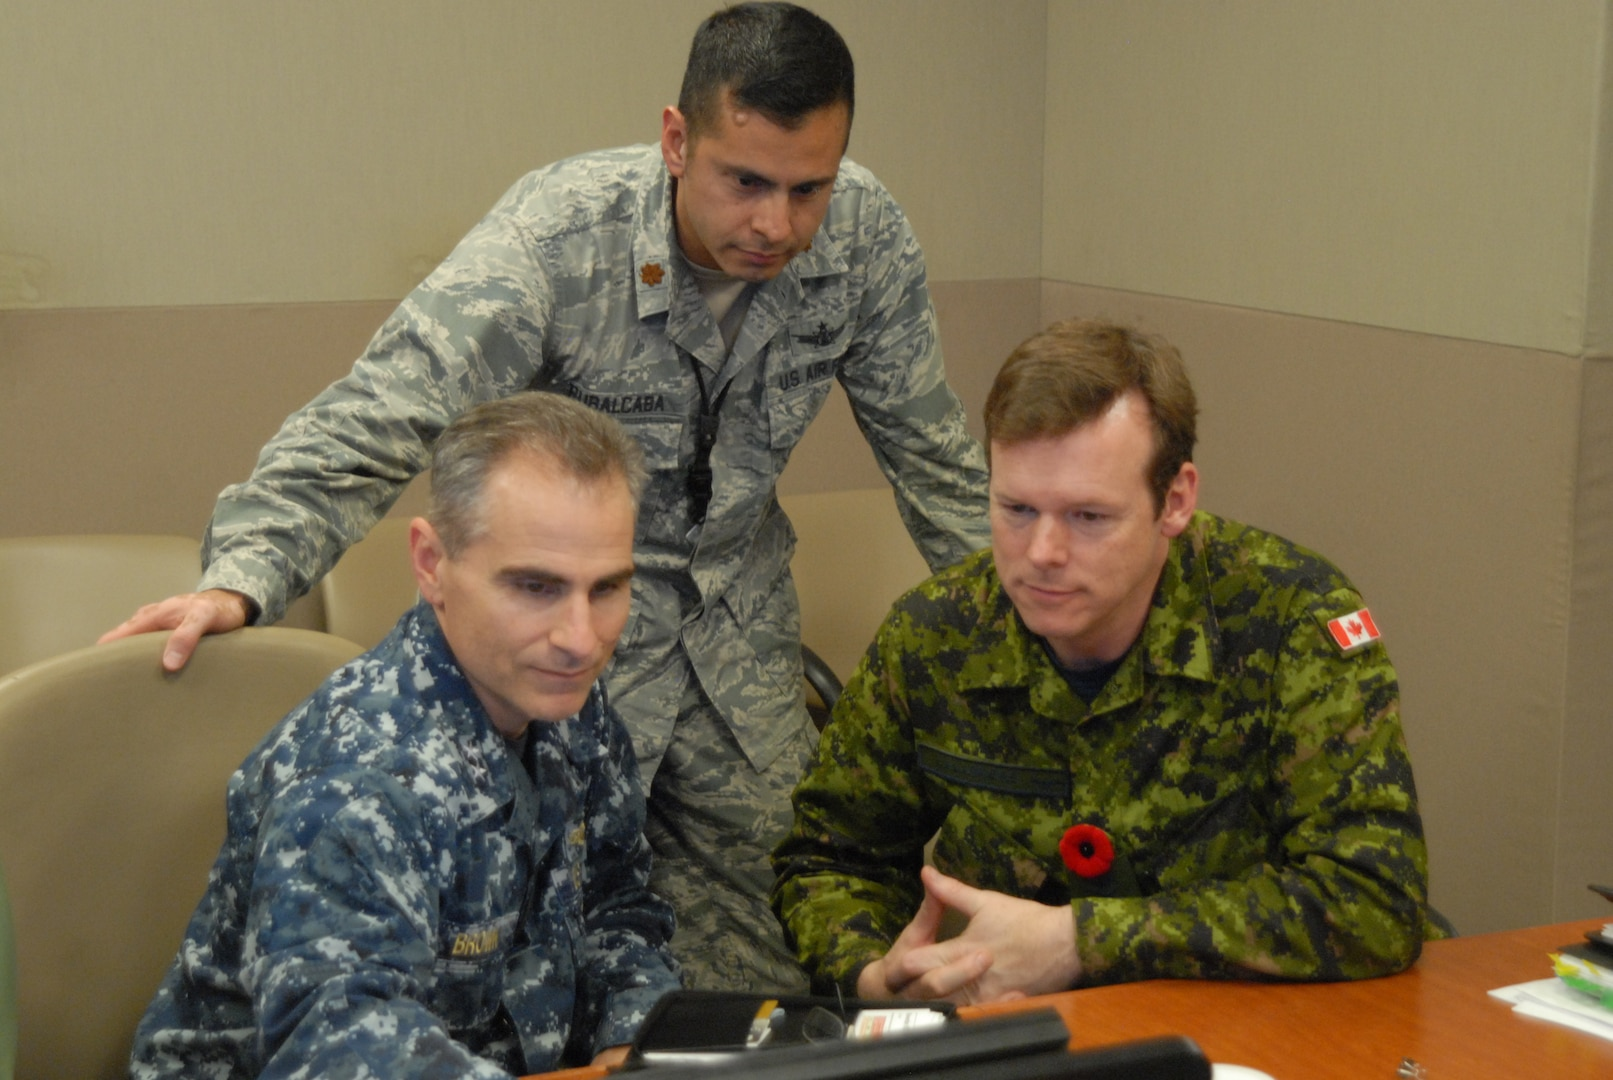 U.S. Navy Rear Adm. Brian Brown (seated left), Joint Functional Component Command for Space (JFCC Space) deputy commander, Royal Canadian Air Force (RCAF) Brig. Gen. Michel Lalumiere (seated right), RCAF Director General Space, and U.S. Air Force Maj. Daniel Rubalcaba, Rear Adm. Brown's executive officer, prepare for a battle update and assessment briefing, Nov. 3, 2015, at the Joint Space Operations Center, Vandenberg Air Force Base, Calif., in support of Exercise GLOBAL THUNDER 16. Allied participation in the exercise strengthens relationships with our international partners and provides additional levels of resiliency in our combined forces. GLOBAL THUNDER is an annual U.S. Strategic Command training event that assesses command and control functionality in all USSTRATCOM mission areas and affords component commands a venue to evaluate their joint operational readiness. Planning for GLOBAL THUNDER 16 has been under way for more than a year and is based on a notional scenario with fictitious adversaries. One of nine DoD unified combatant commands, USSTRATCOM has global strategic missions, assigned through the Unified Command Plan, which include strategic deterrence; space operations; cyberspace operations; joint electronic warfare; global strike; missile defense; intelligence, surveillance and reconnaissance; combating weapons of mass destruction; and analysis and targeting. (U.S. Air Force photo by Capt. Nicholas Mercurio/Released)